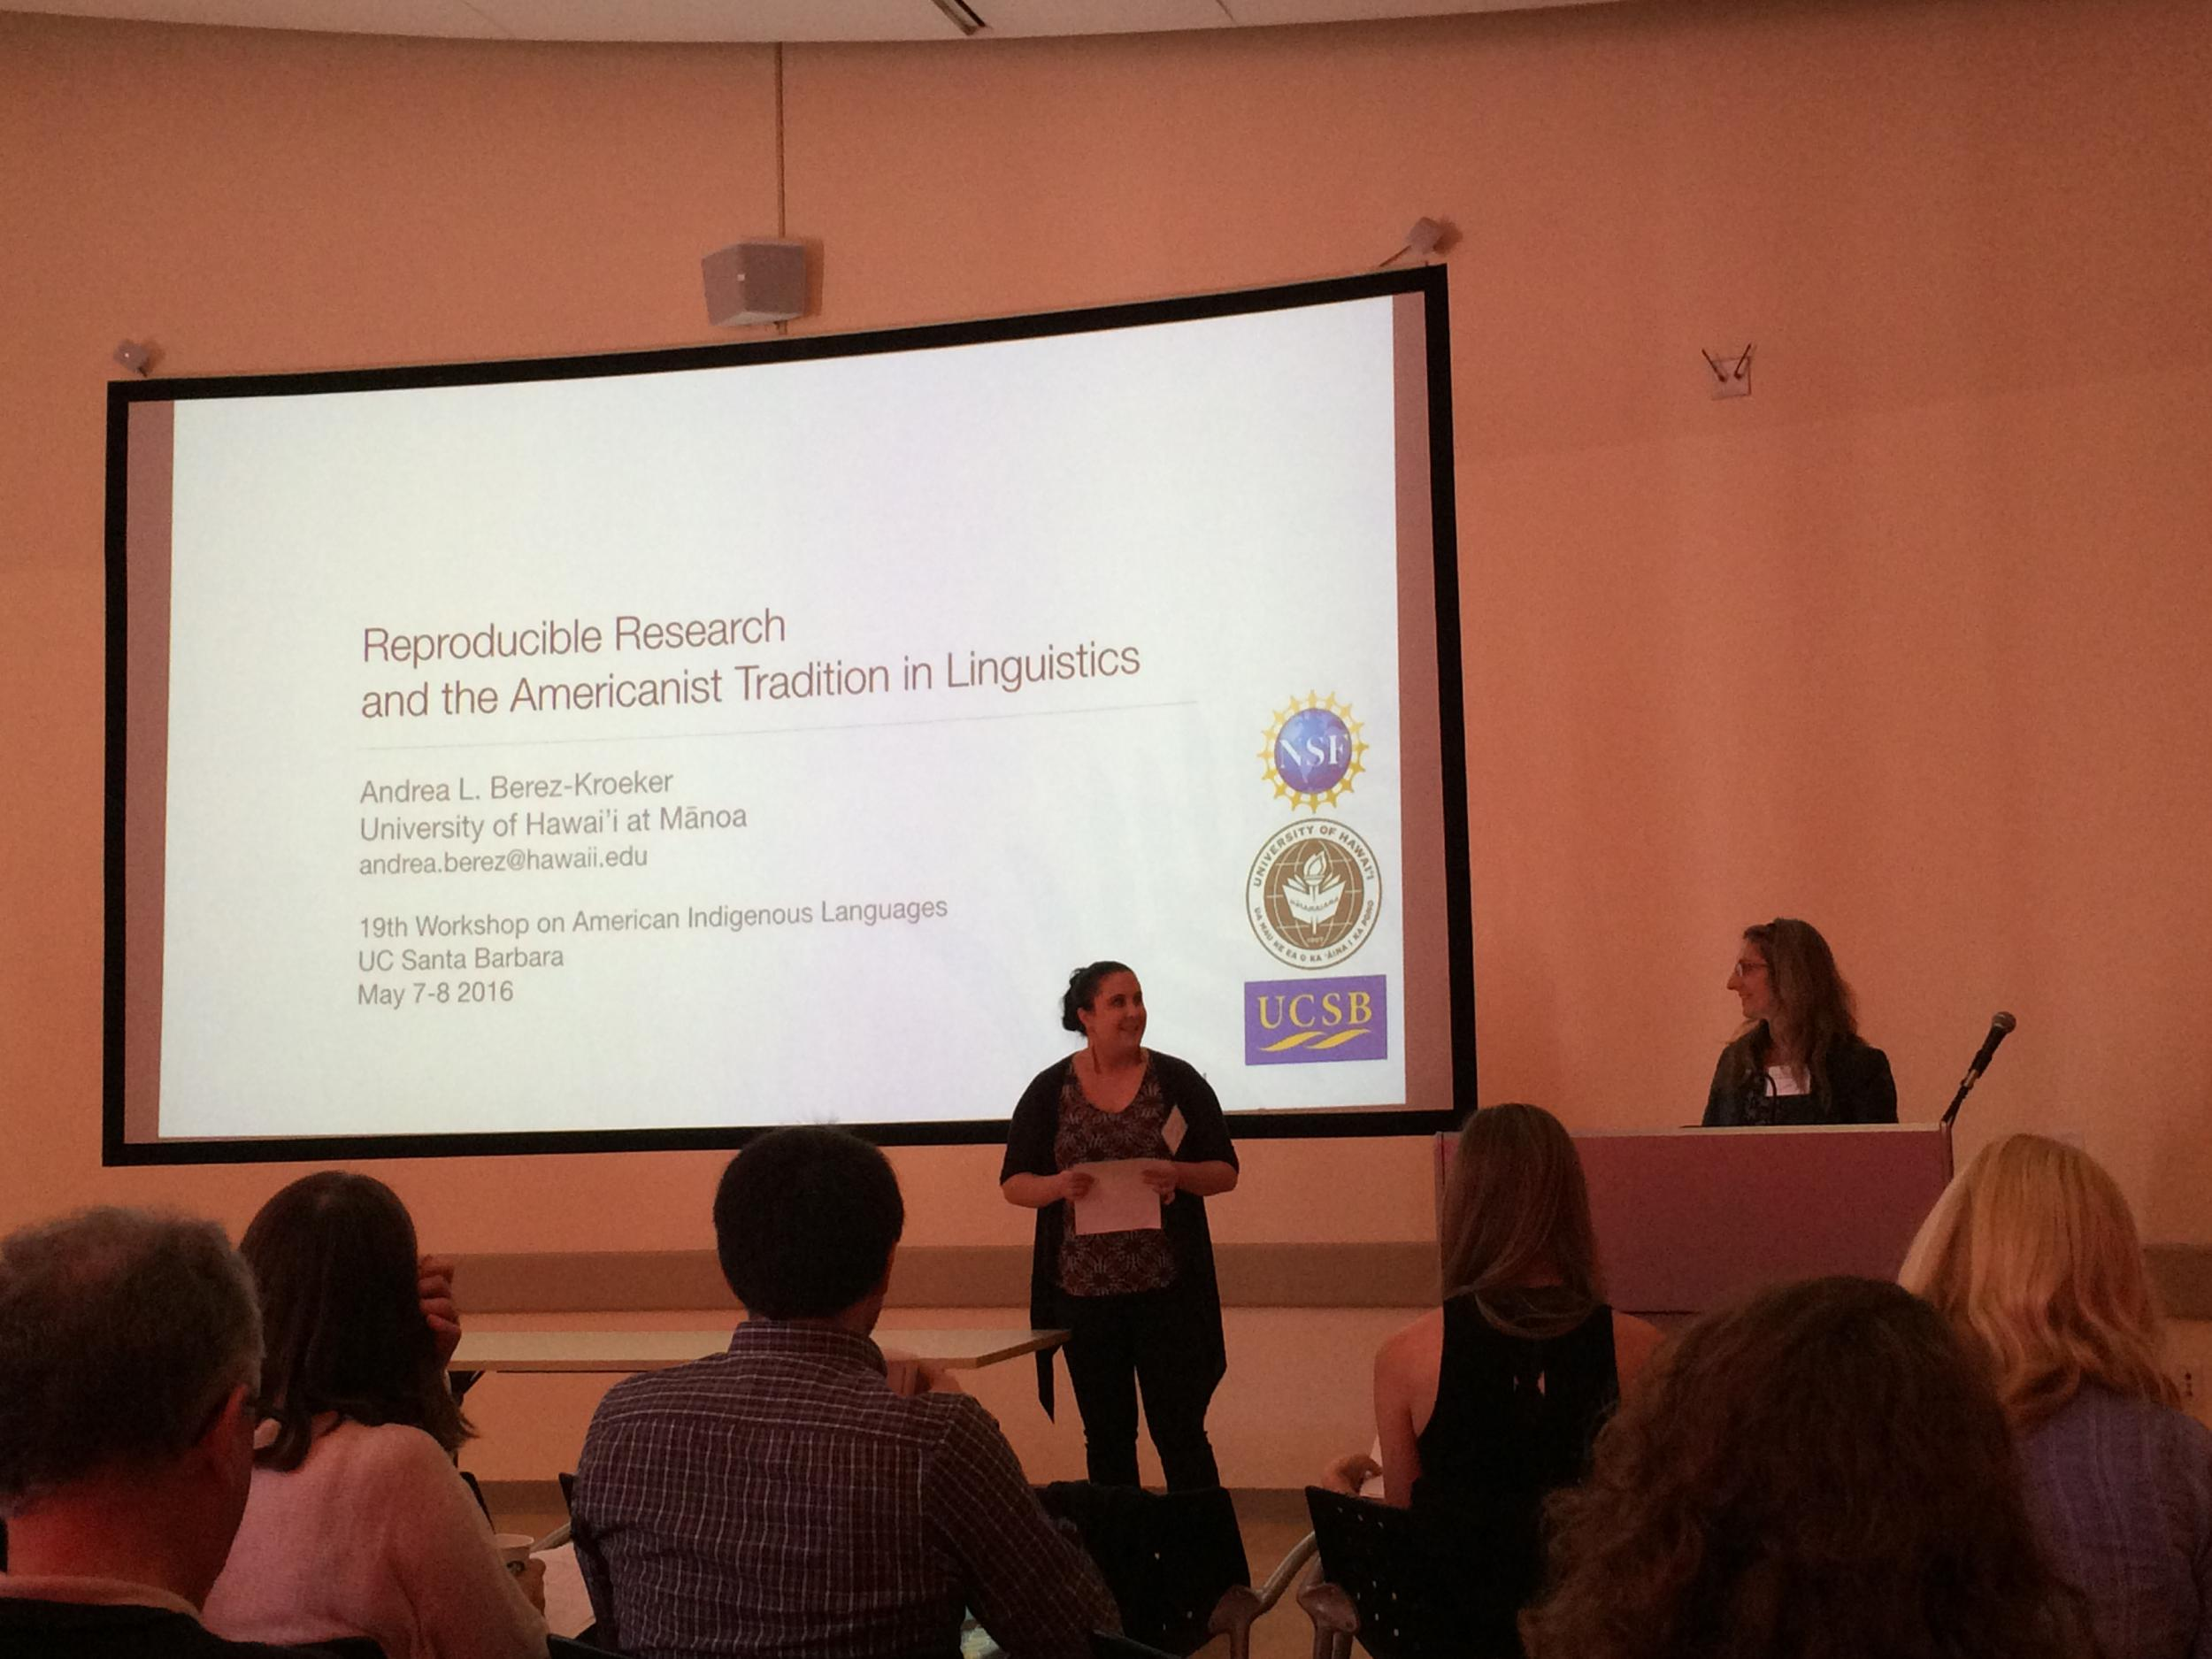 Ucsb linguistics hosts 21st annual workshop on american indigenous ucsb ling grad student megan lukaniec introducing alumna andrea berez kroeker keynote speaker at thecheapjerseys Choice Image